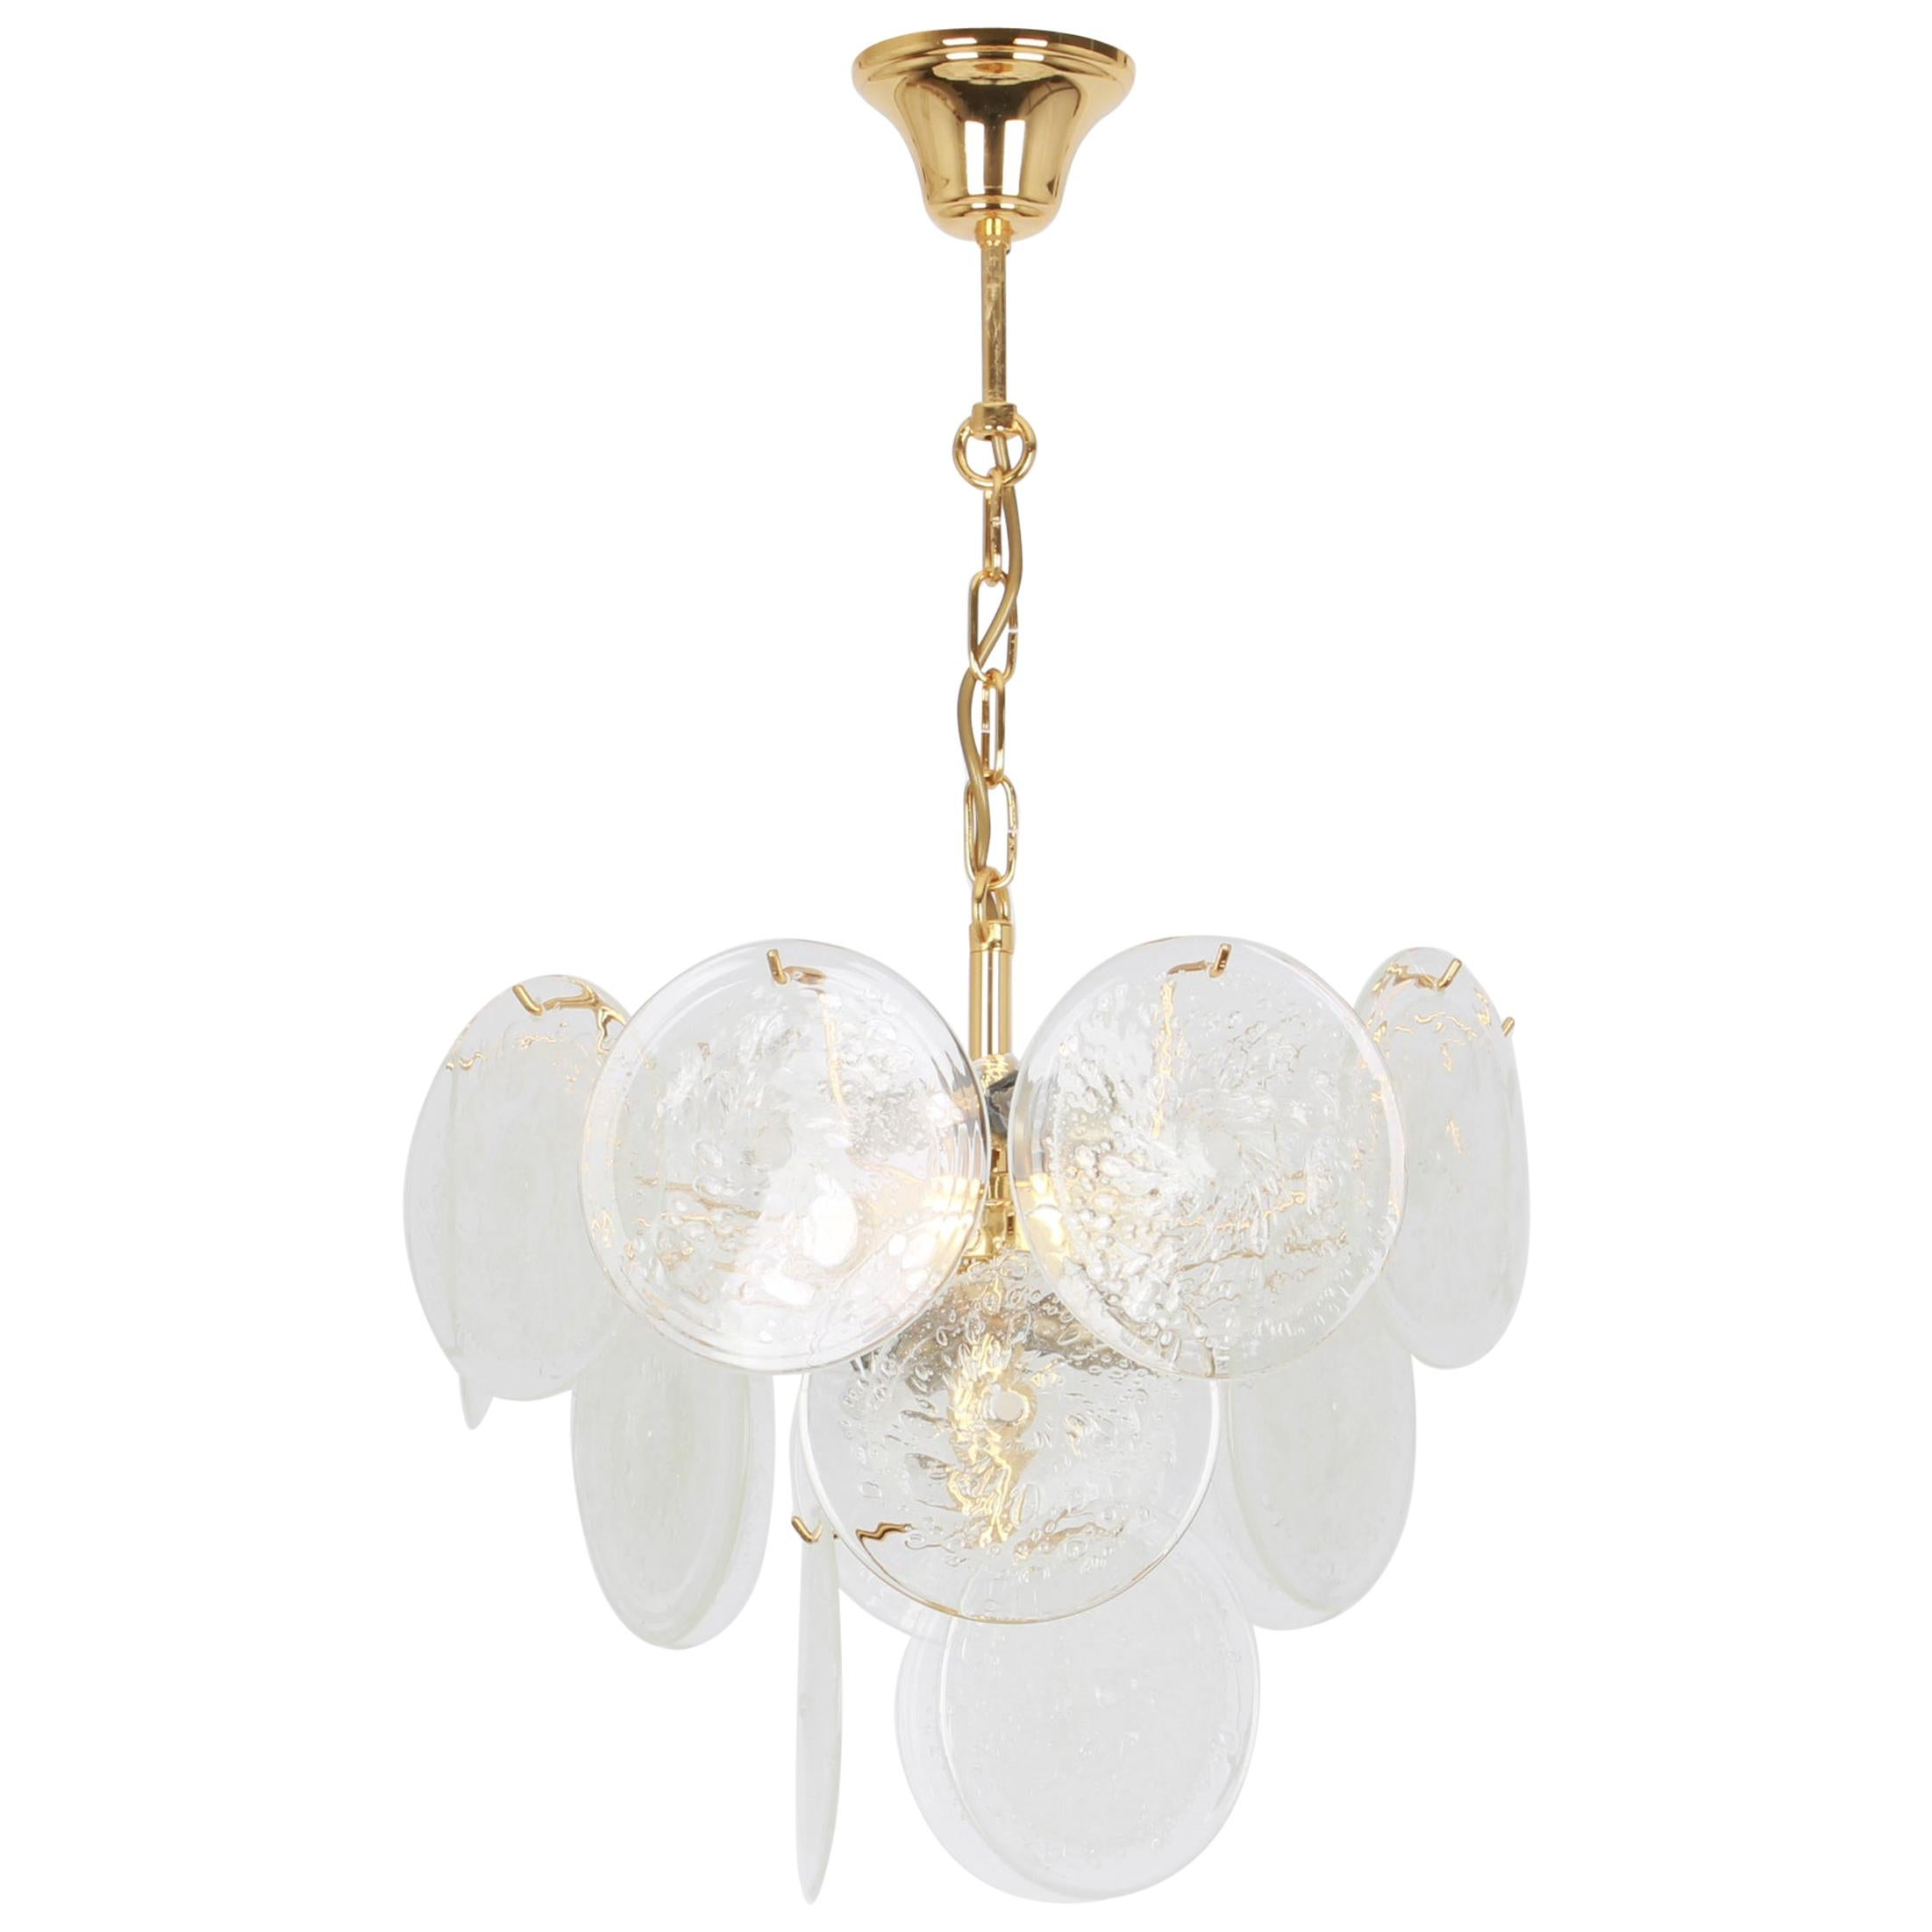 Gino Vistosi Chandeliers and Pendants 57 For Sale at 1stDibs